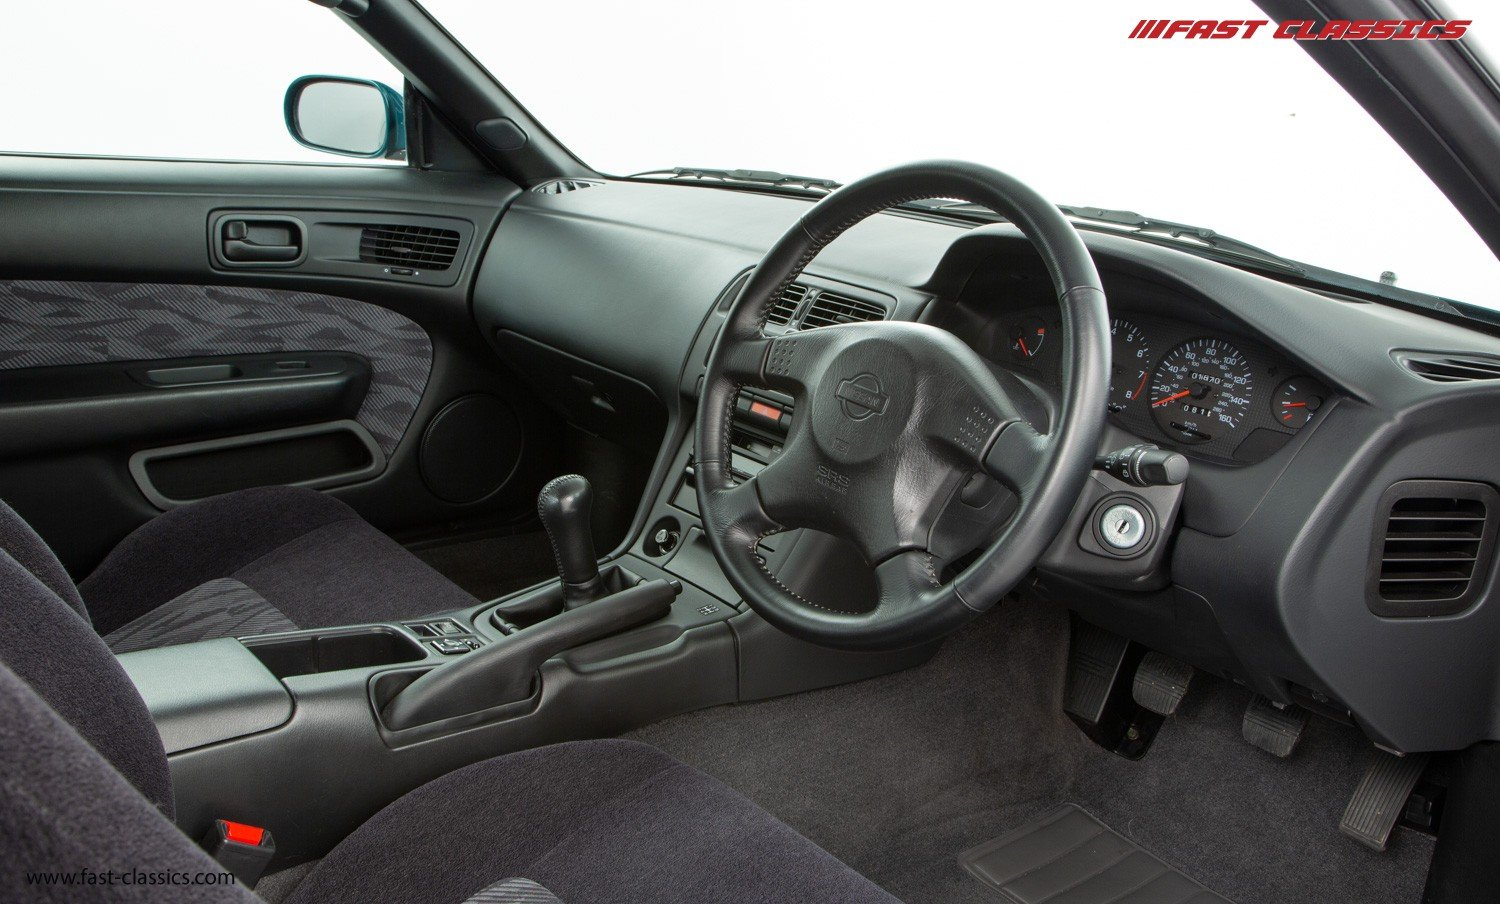 1999 NISSAN 200SX // UK SUPPLIED // 18K MILES // FAMILY OWNED For Sale (picture 4 of 6)